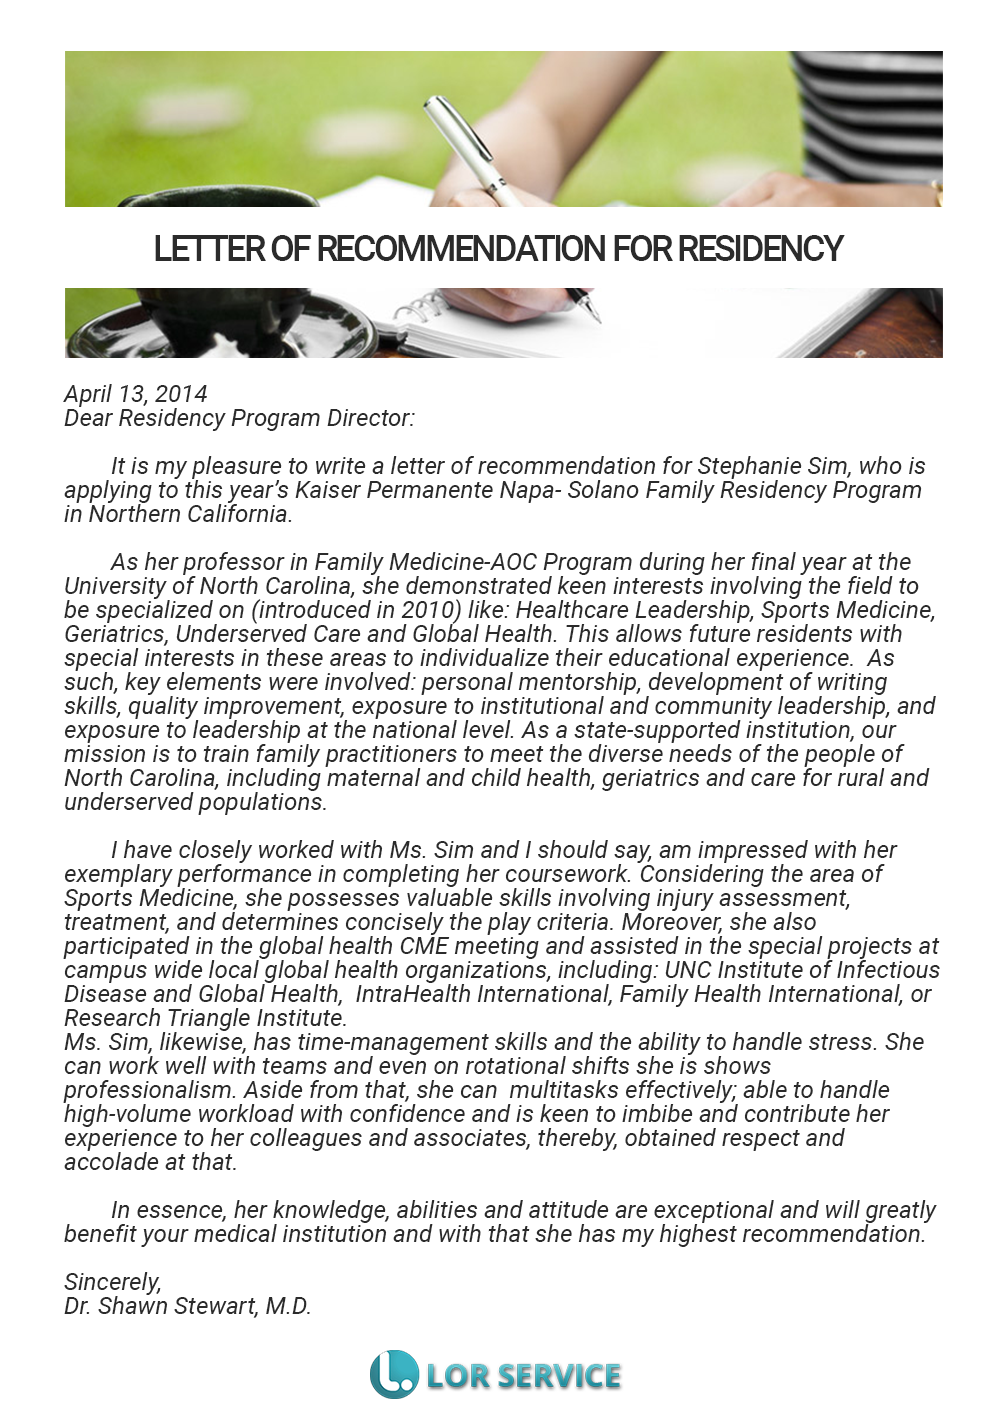 Residency letter of recommendation sample medical lor sample residency letter of recommendation spiritdancerdesigns